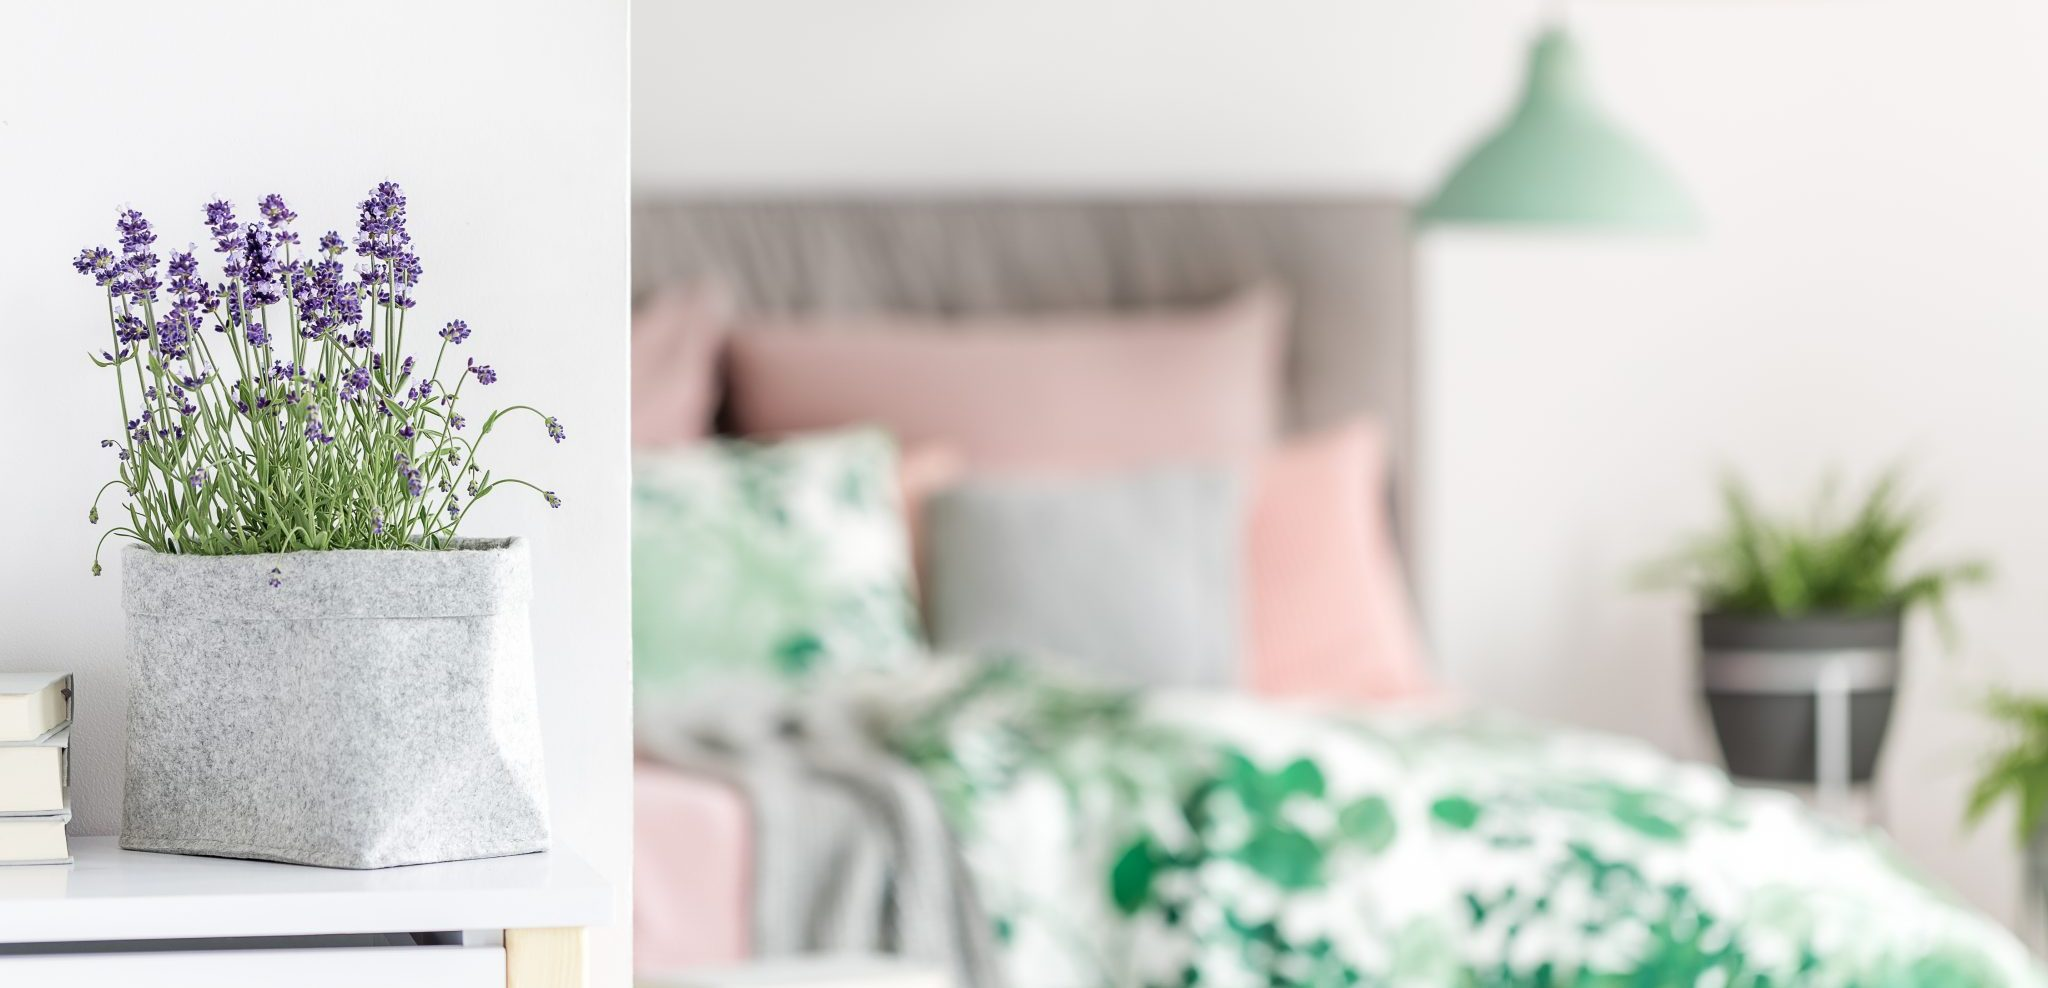 Indulge in Nature's Care: Bedroom Plants for Better Sleep